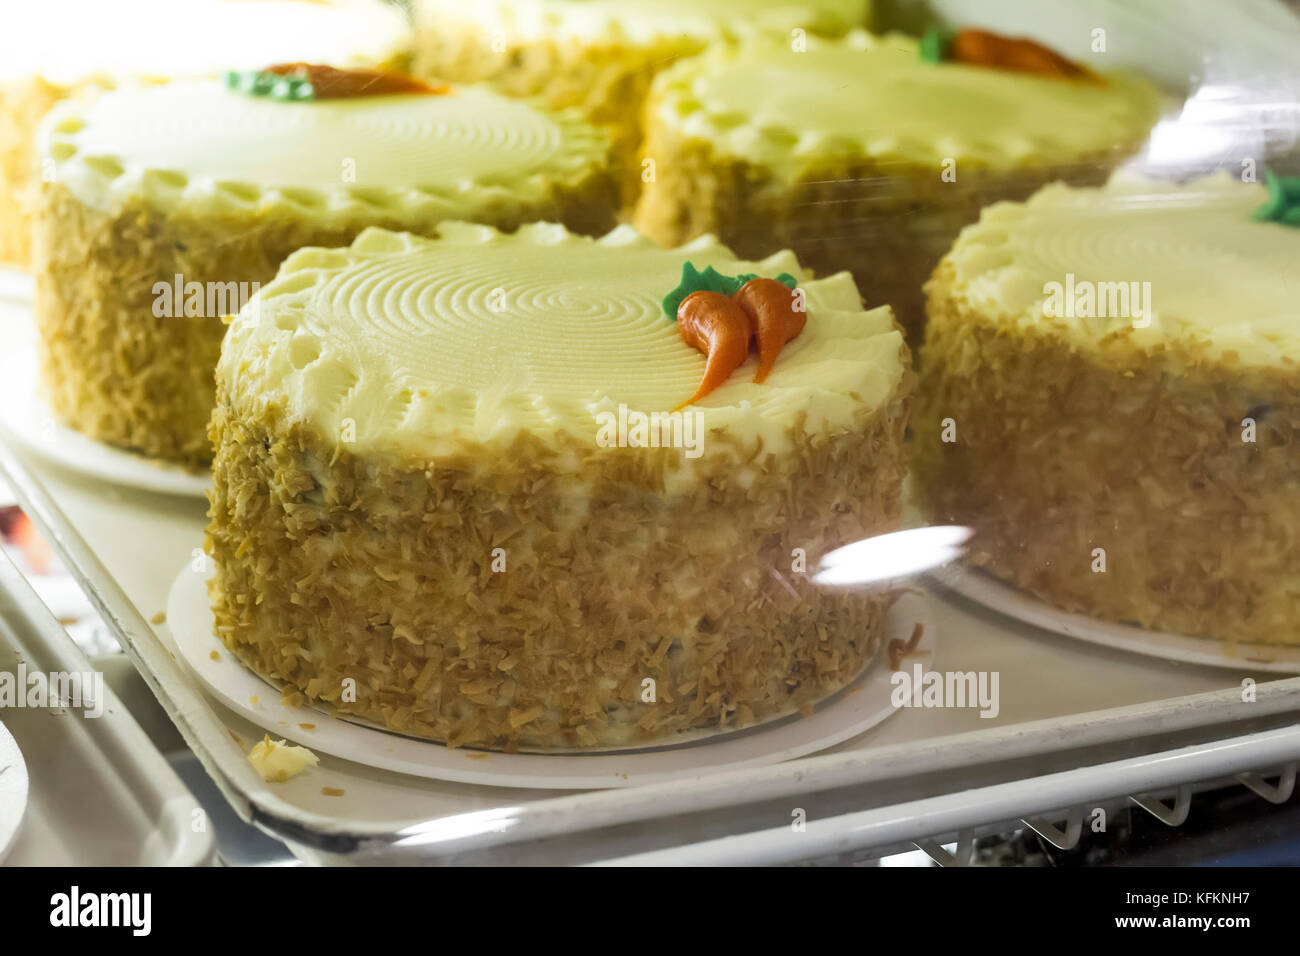 Carrot Cake Cupcake With Cream Cheese Frosting at a bakery. - Stock Image